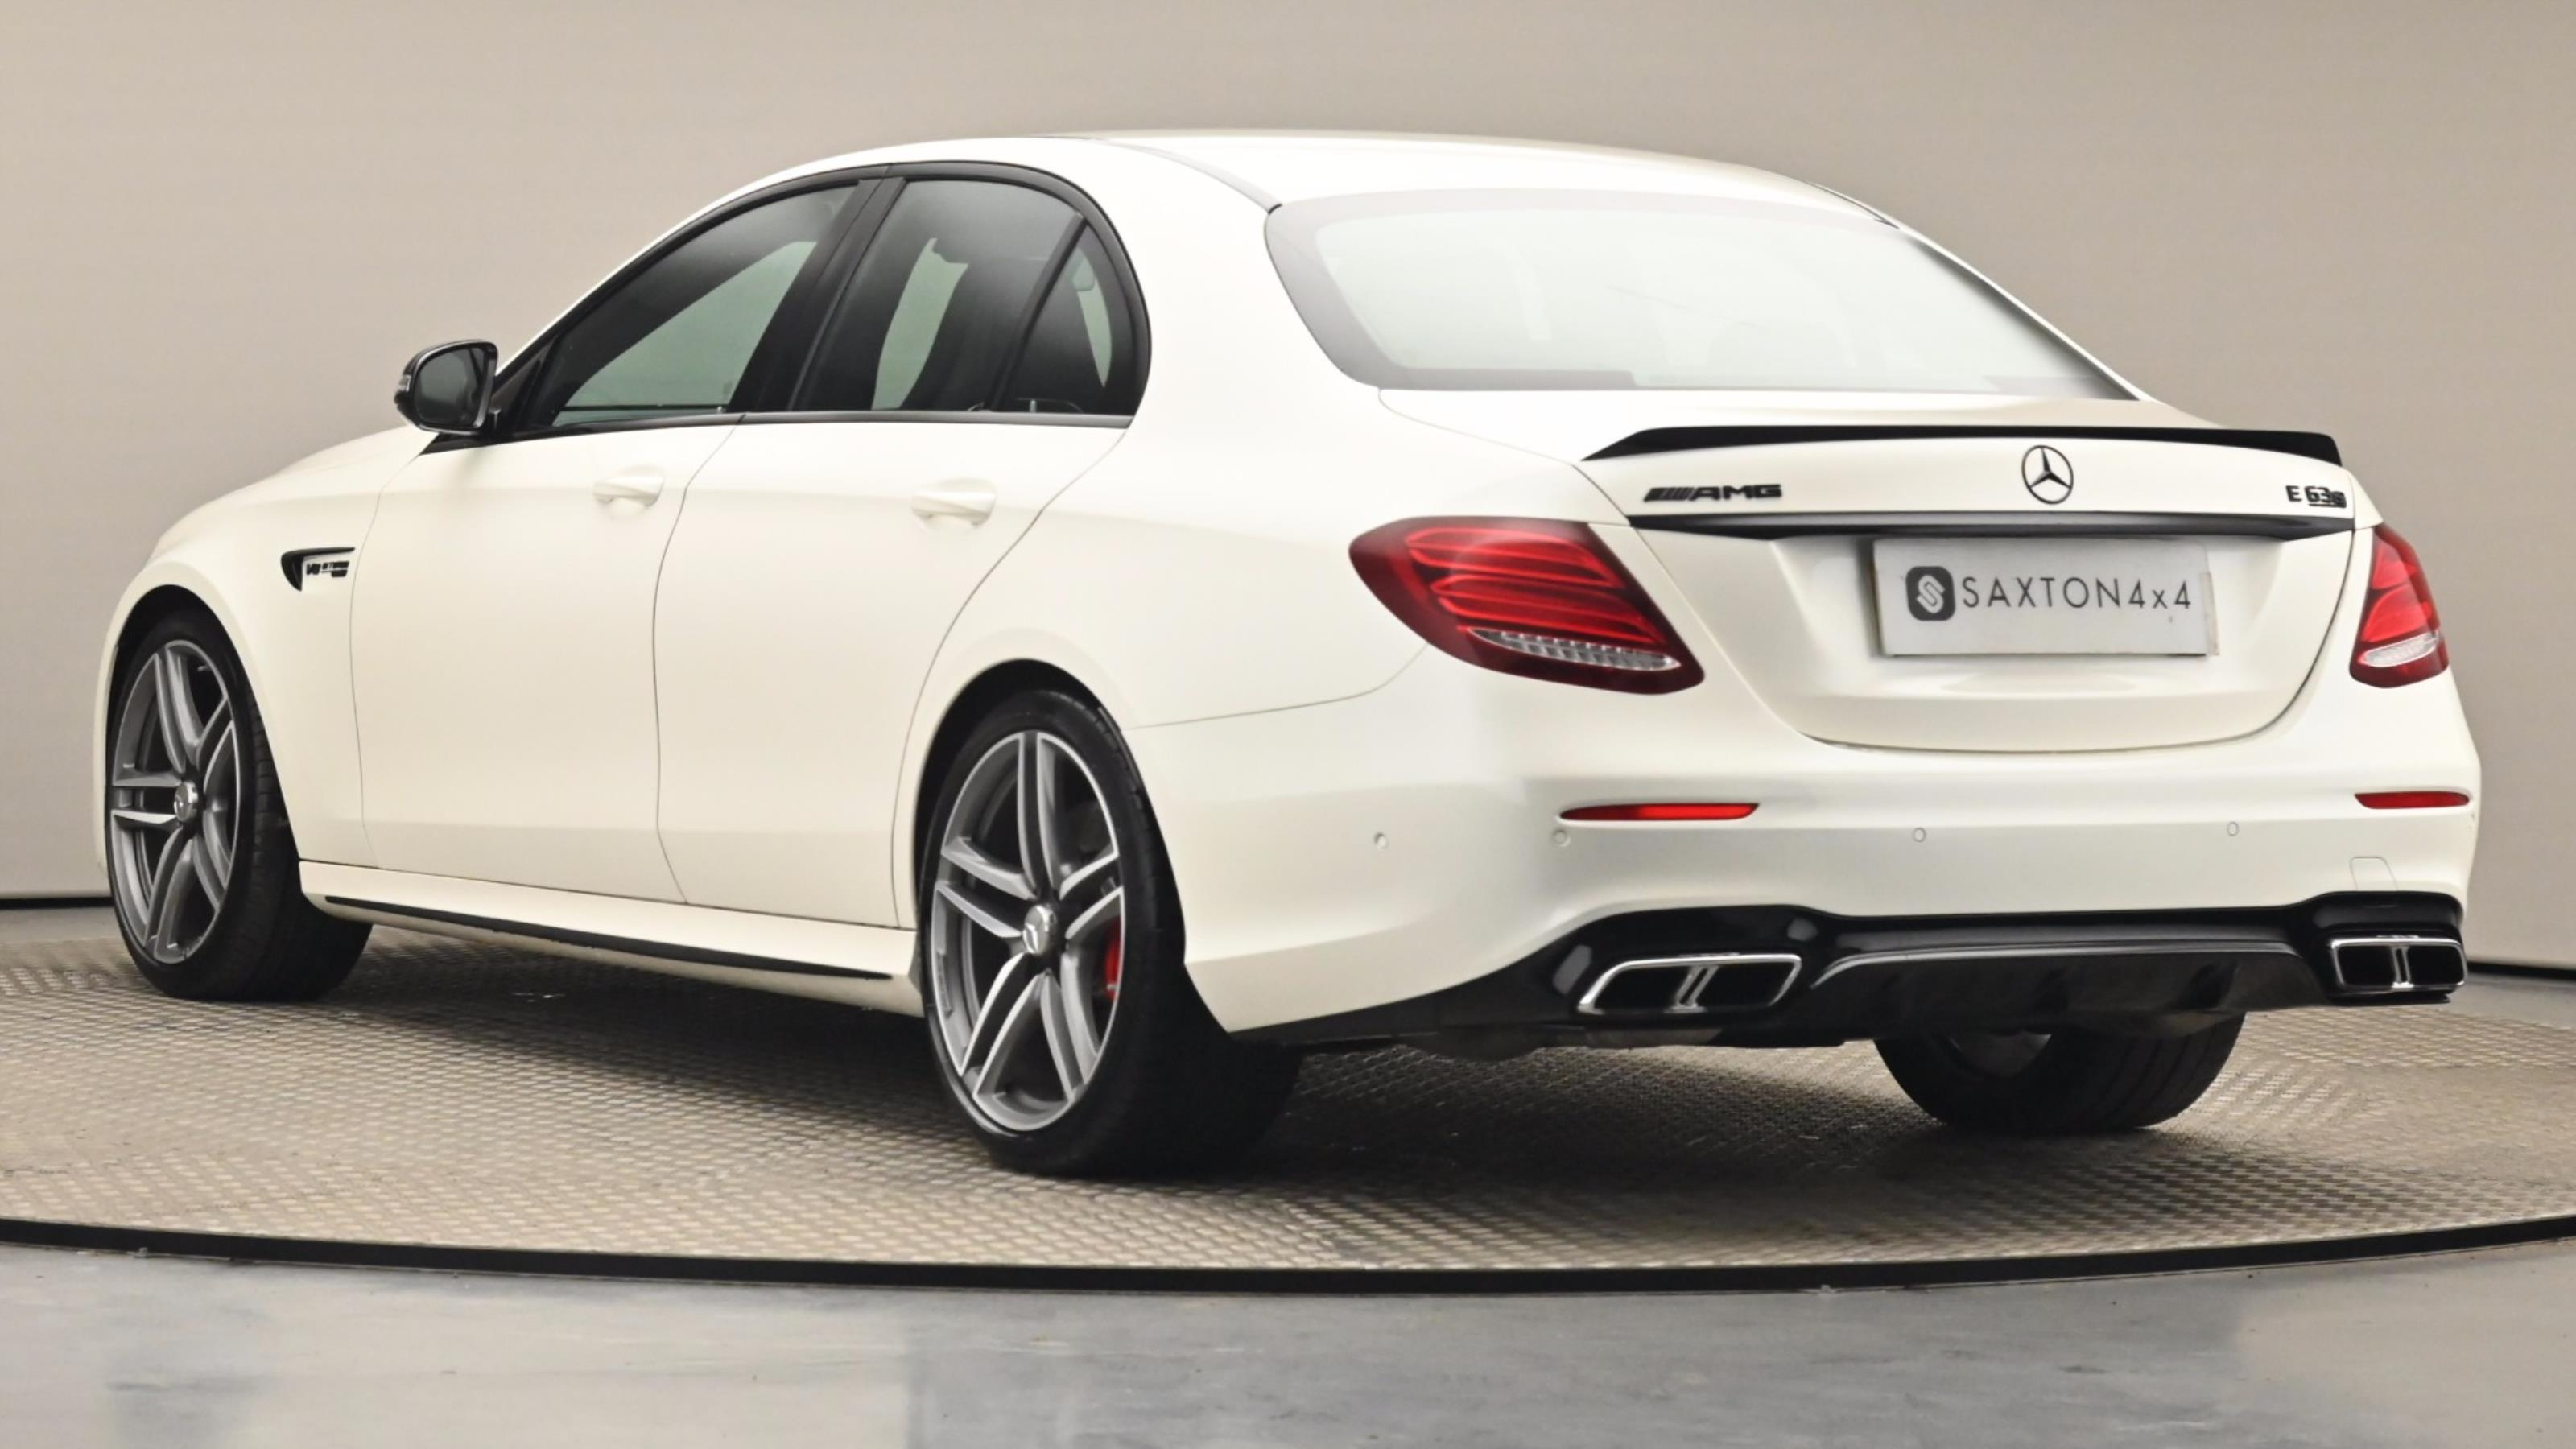 Used 2017 Mercedes-Benz E CLASS E63 S 4Matic+ 4dr 9G-Tronic WHITE at Saxton4x4